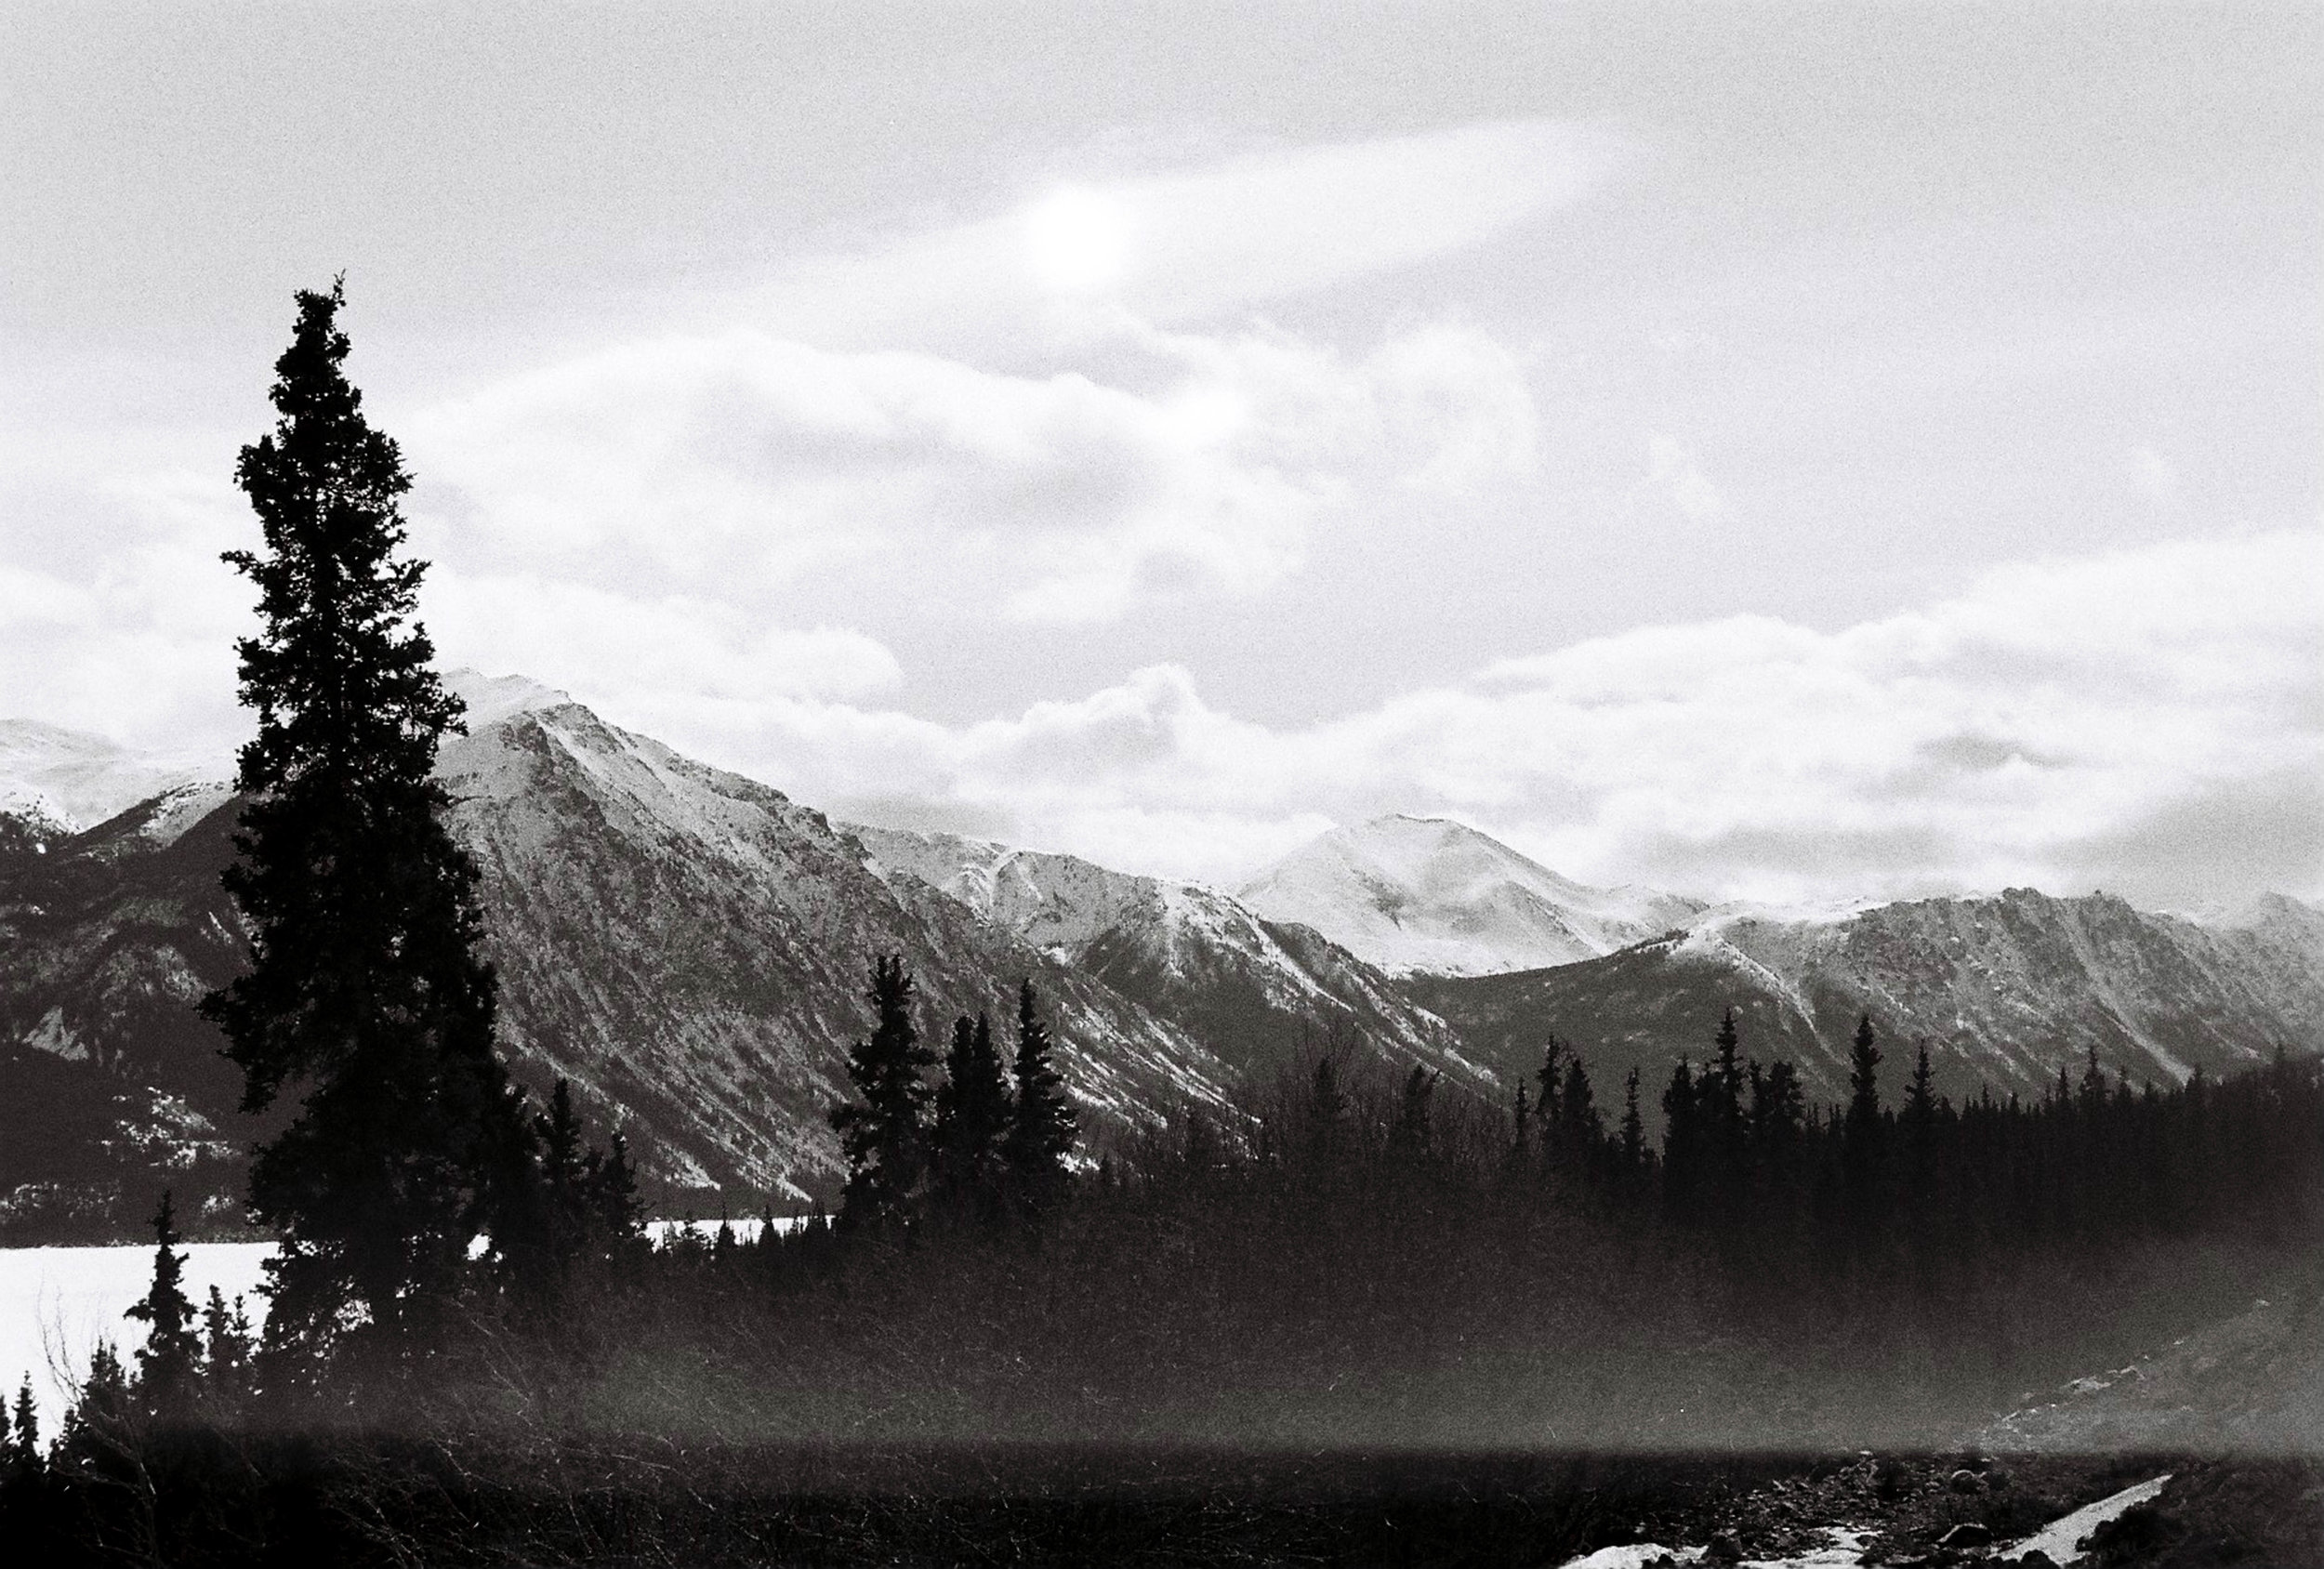 Heading back to Whitehorse from The Whitepass.